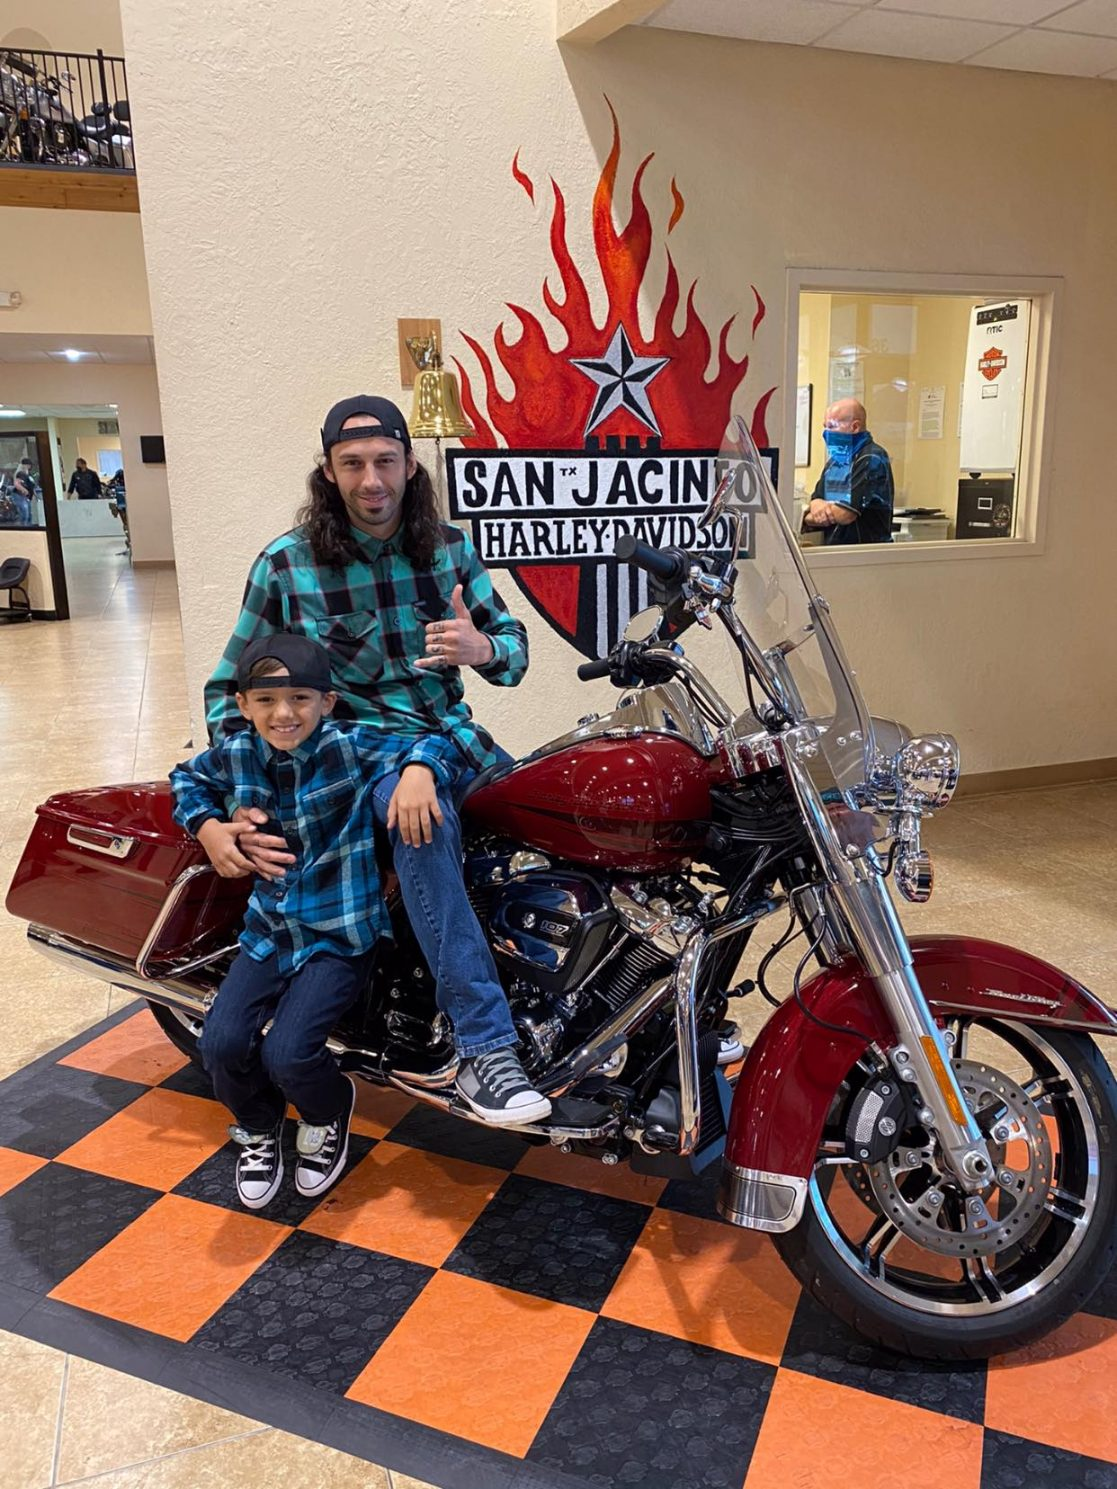 MEET THE WINNER OF THE 5TH ANNUAL WOWC RAFFLE MOTORCYCLE ~ KOBIE LOUVIERE!!